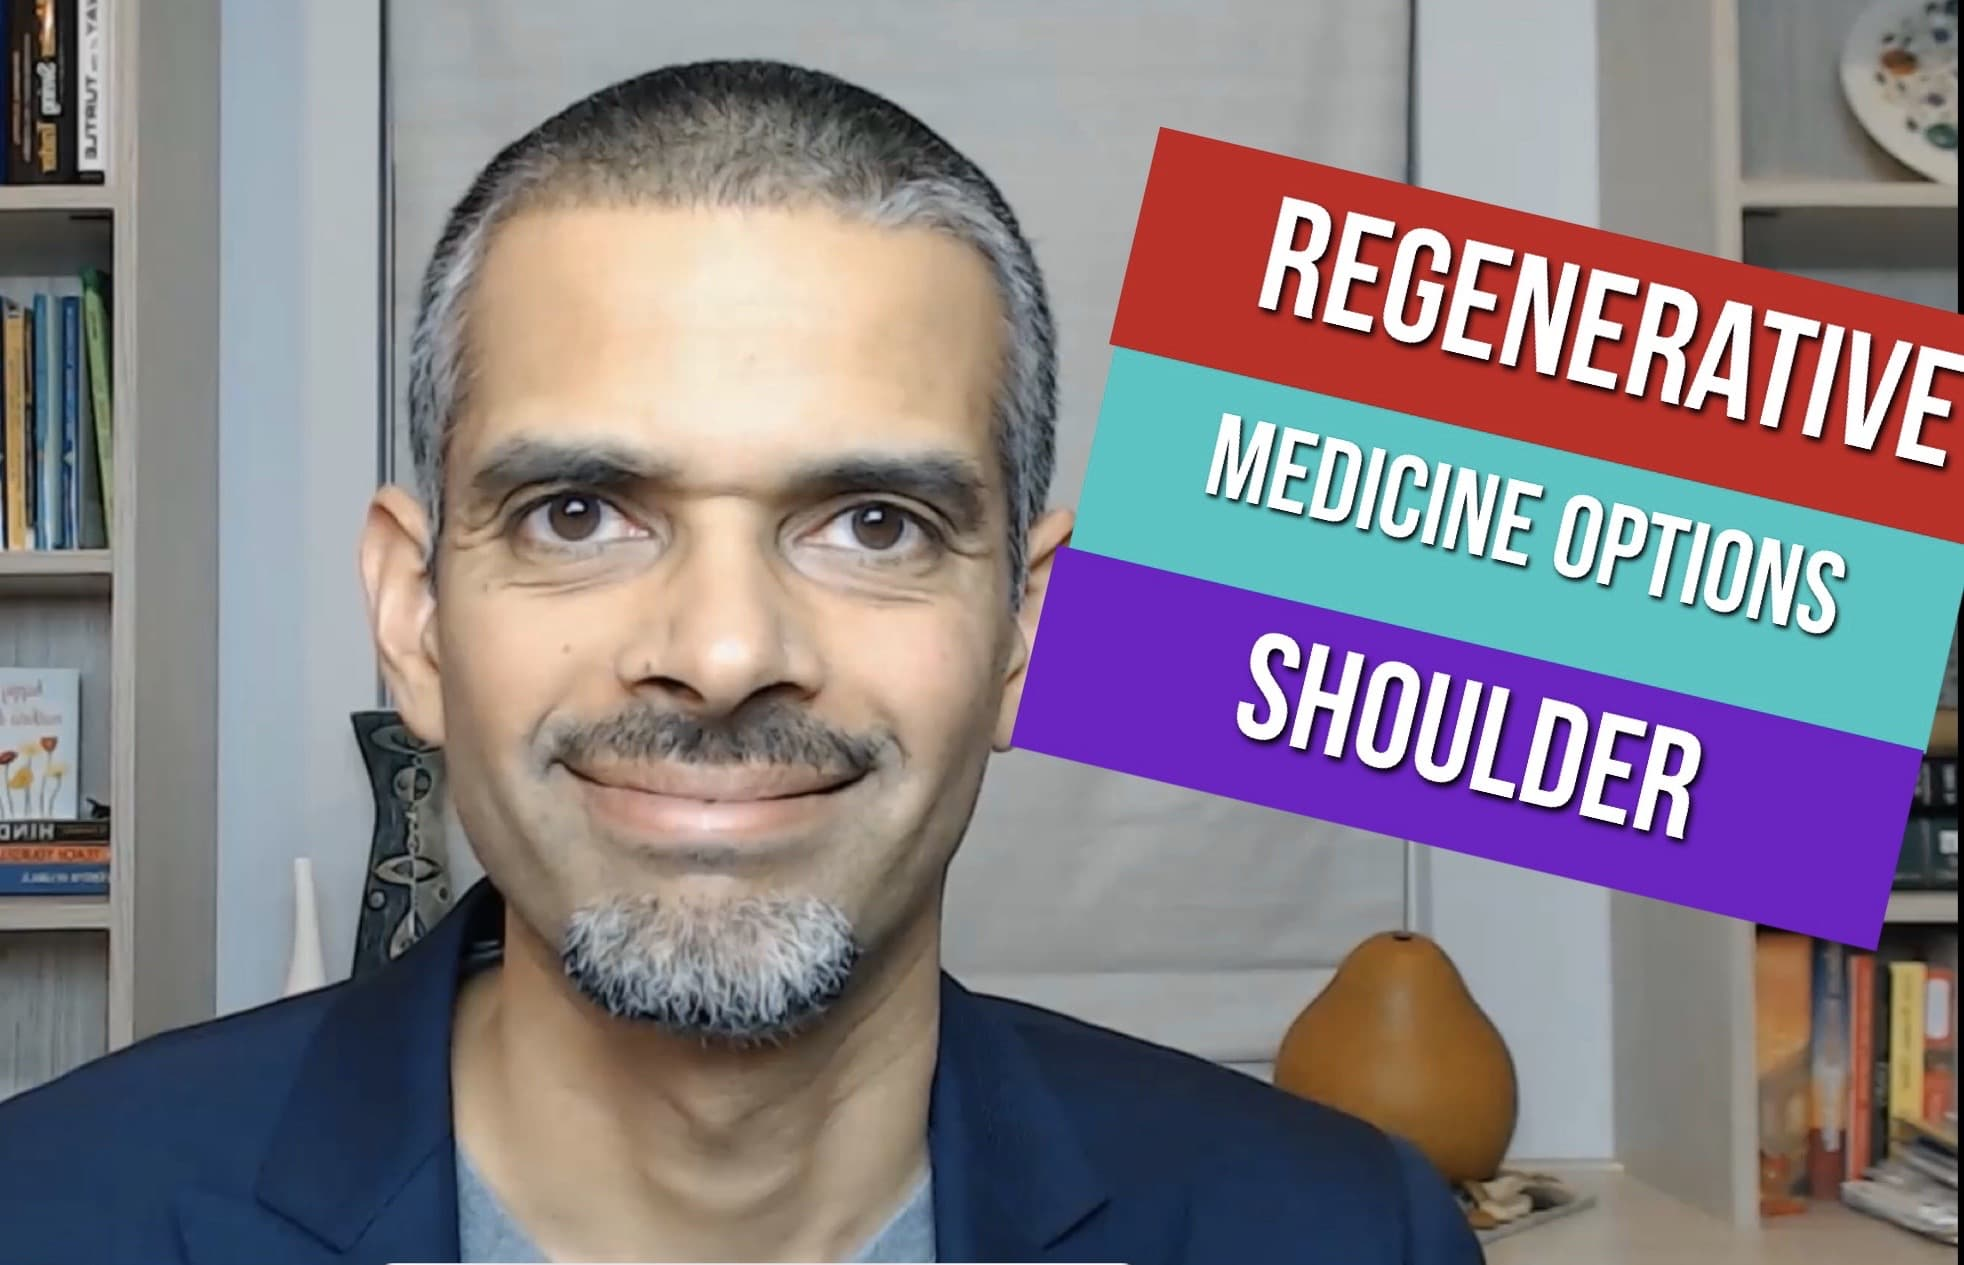 Shoulder Pain- Regenerative Medicine treatment options